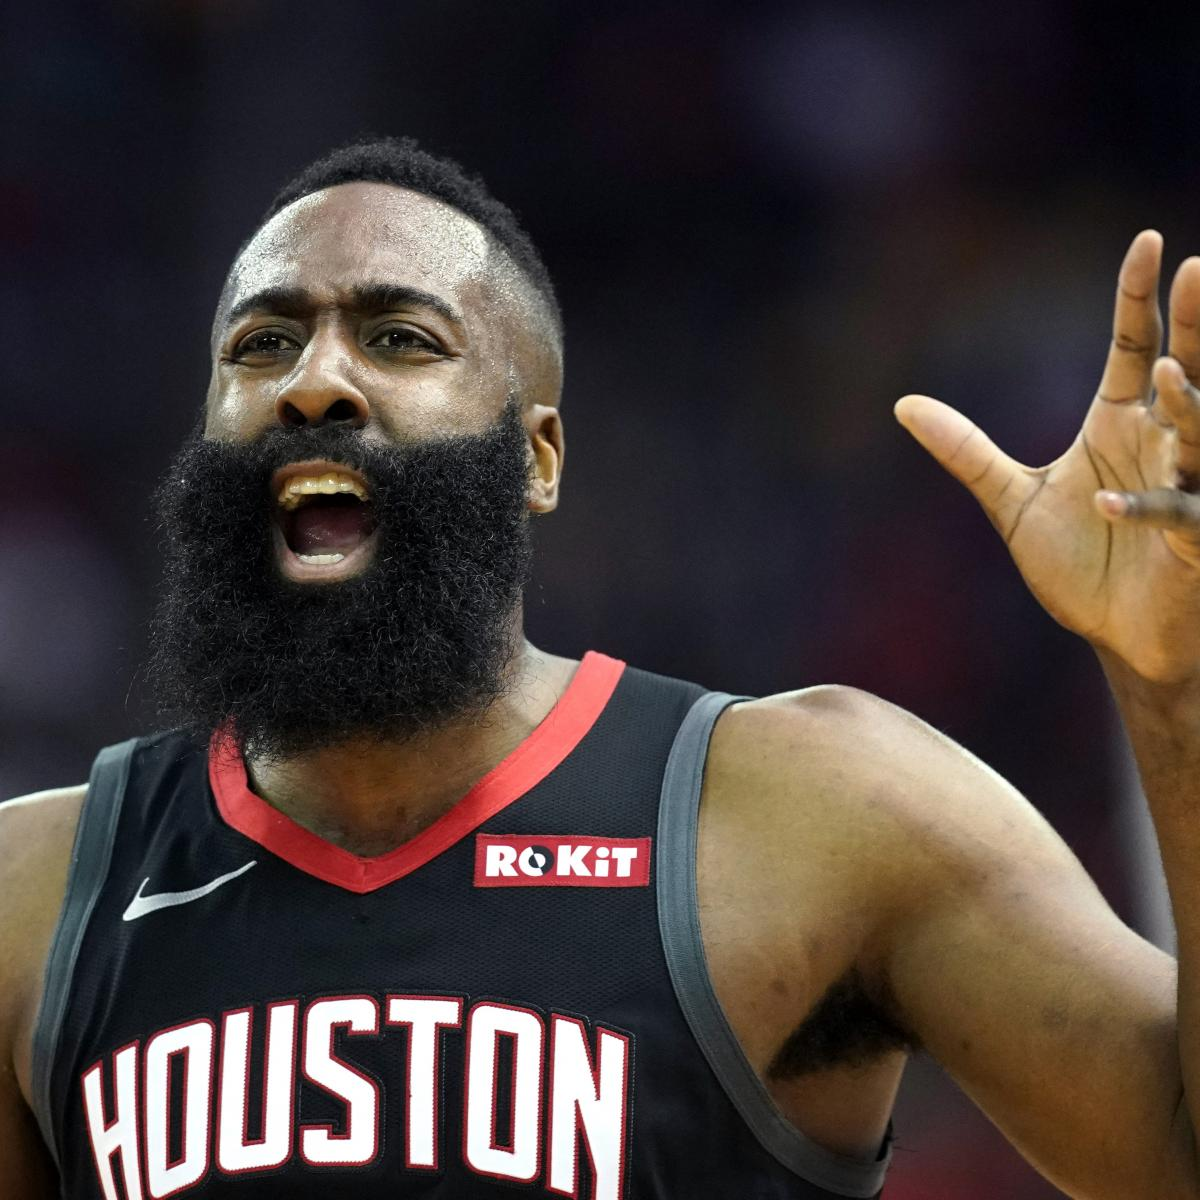 James Harden Latest News: Kevin Durant Says James Harden Playing By The Rules, 'Not